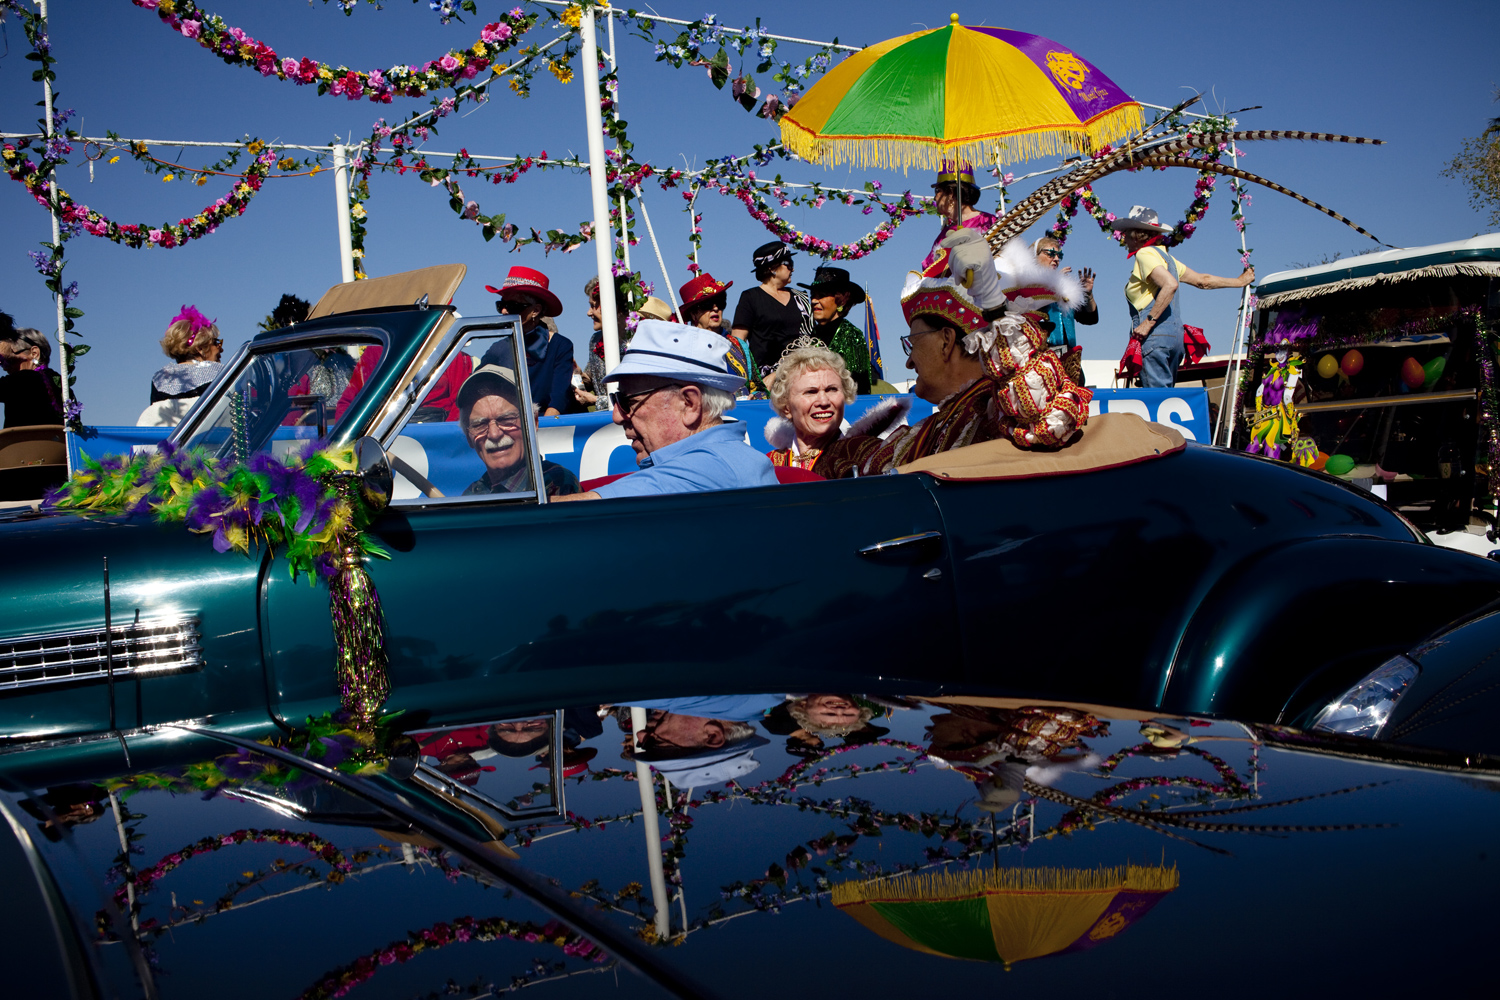 Various club members await their chance to join the Sun City Parade in Sun City, Arizona March 13, 2010.